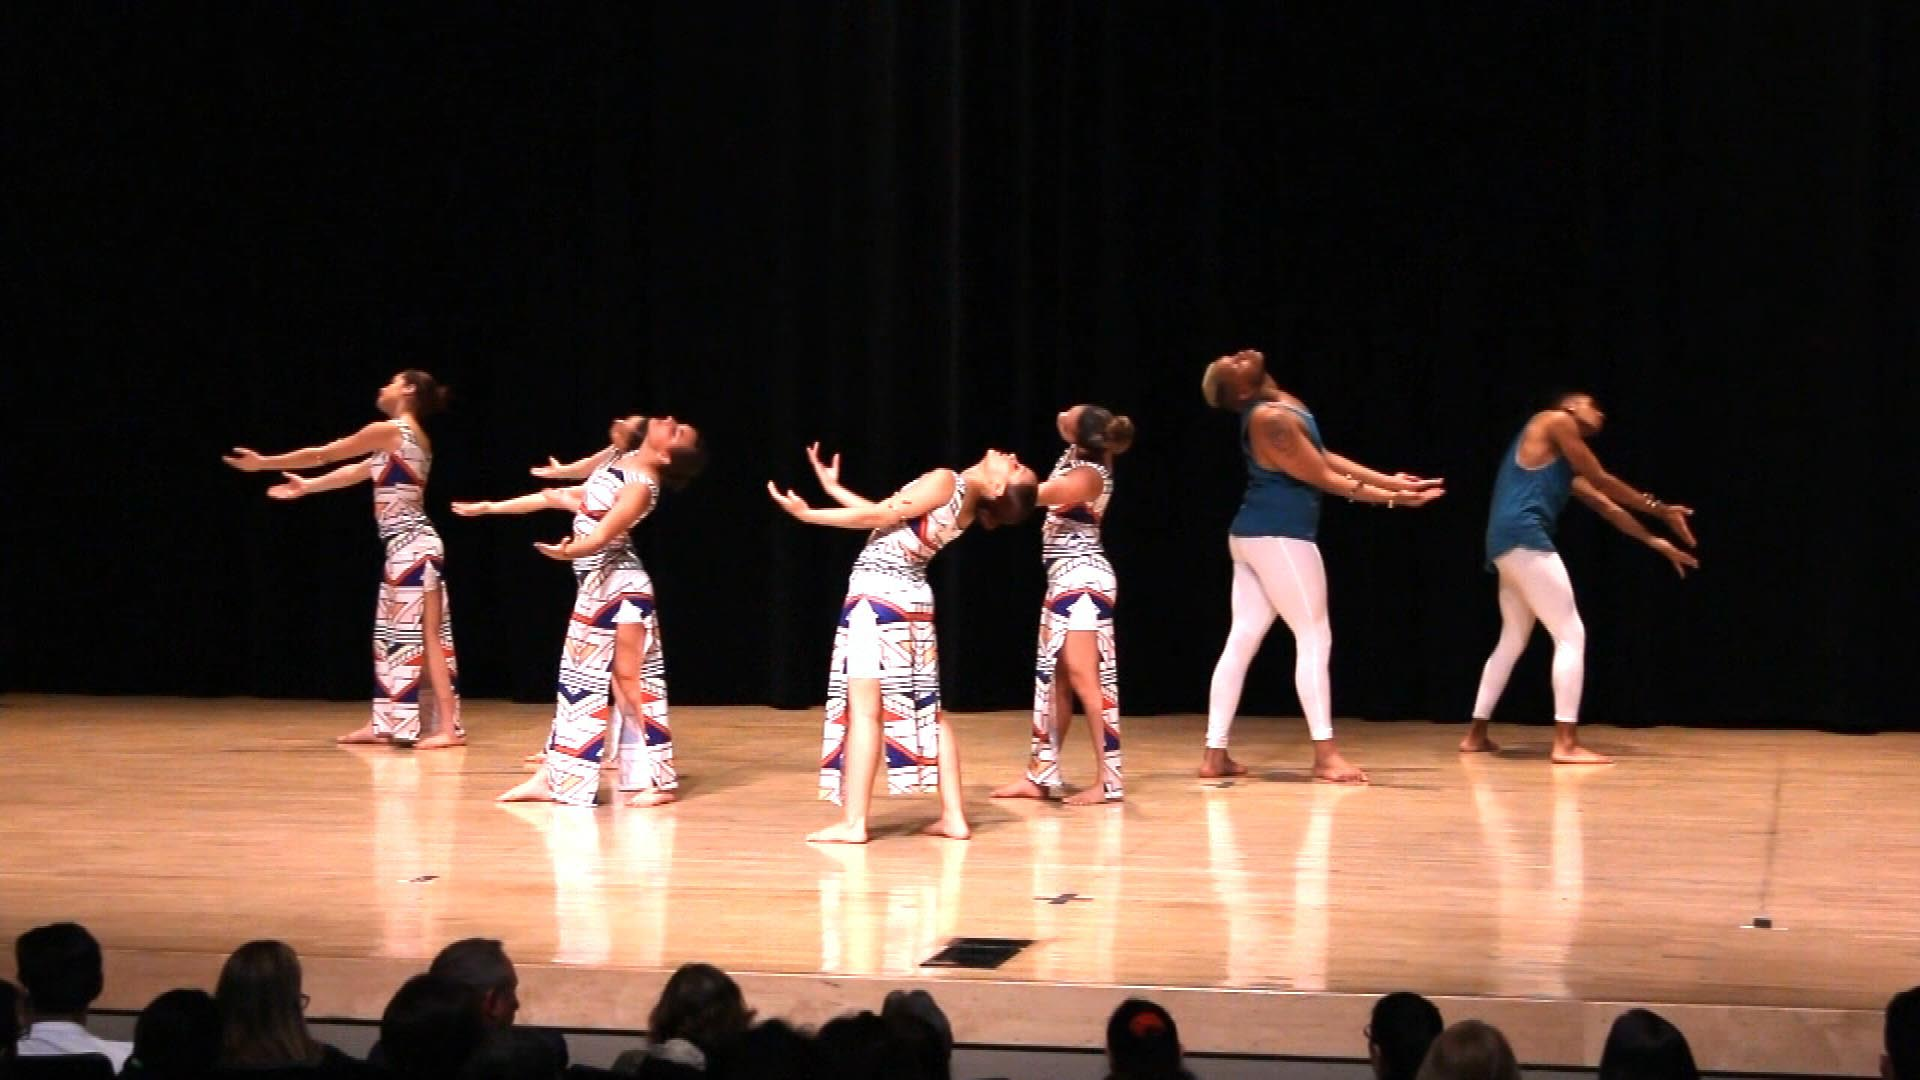 BORINQUEN DANCE THEATER